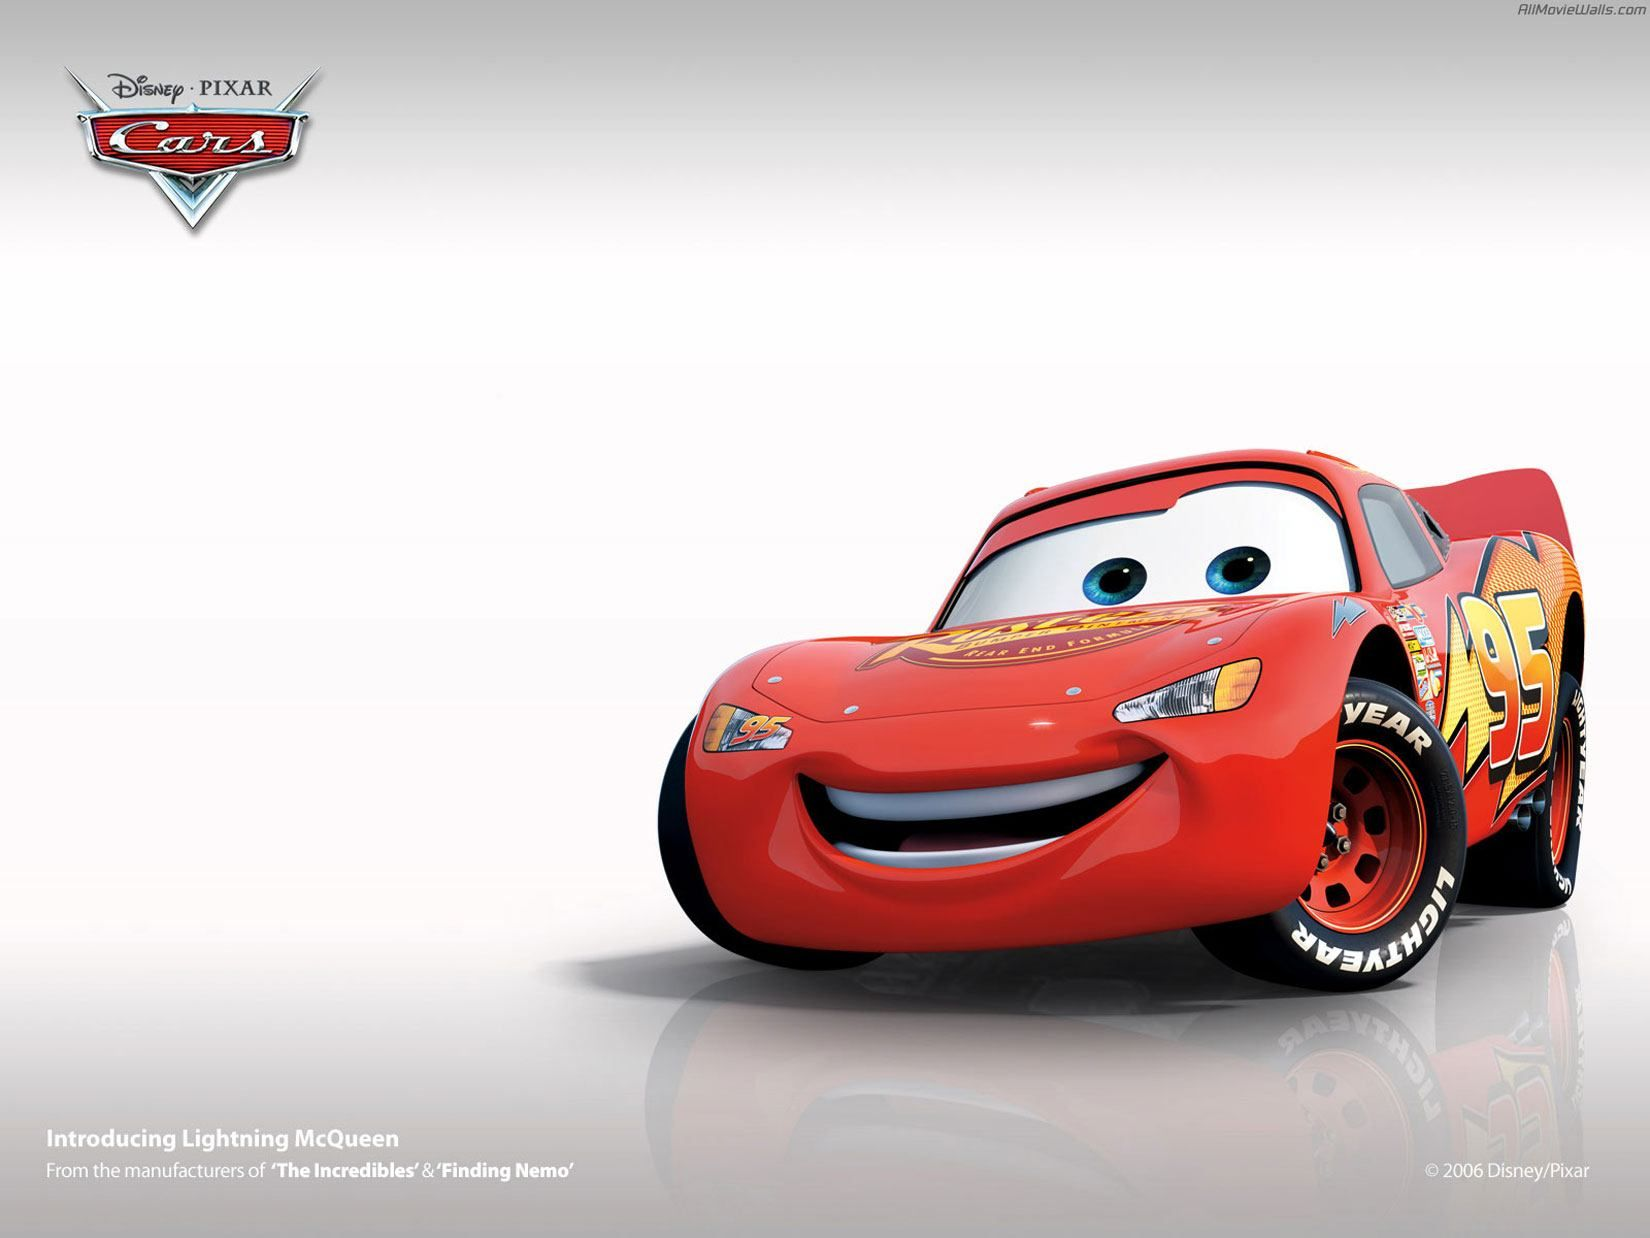 Pixar Cars Wallpaper Cars Movie Wallpapers Disney Cars Wallpaper Cars Movie Disney Cars